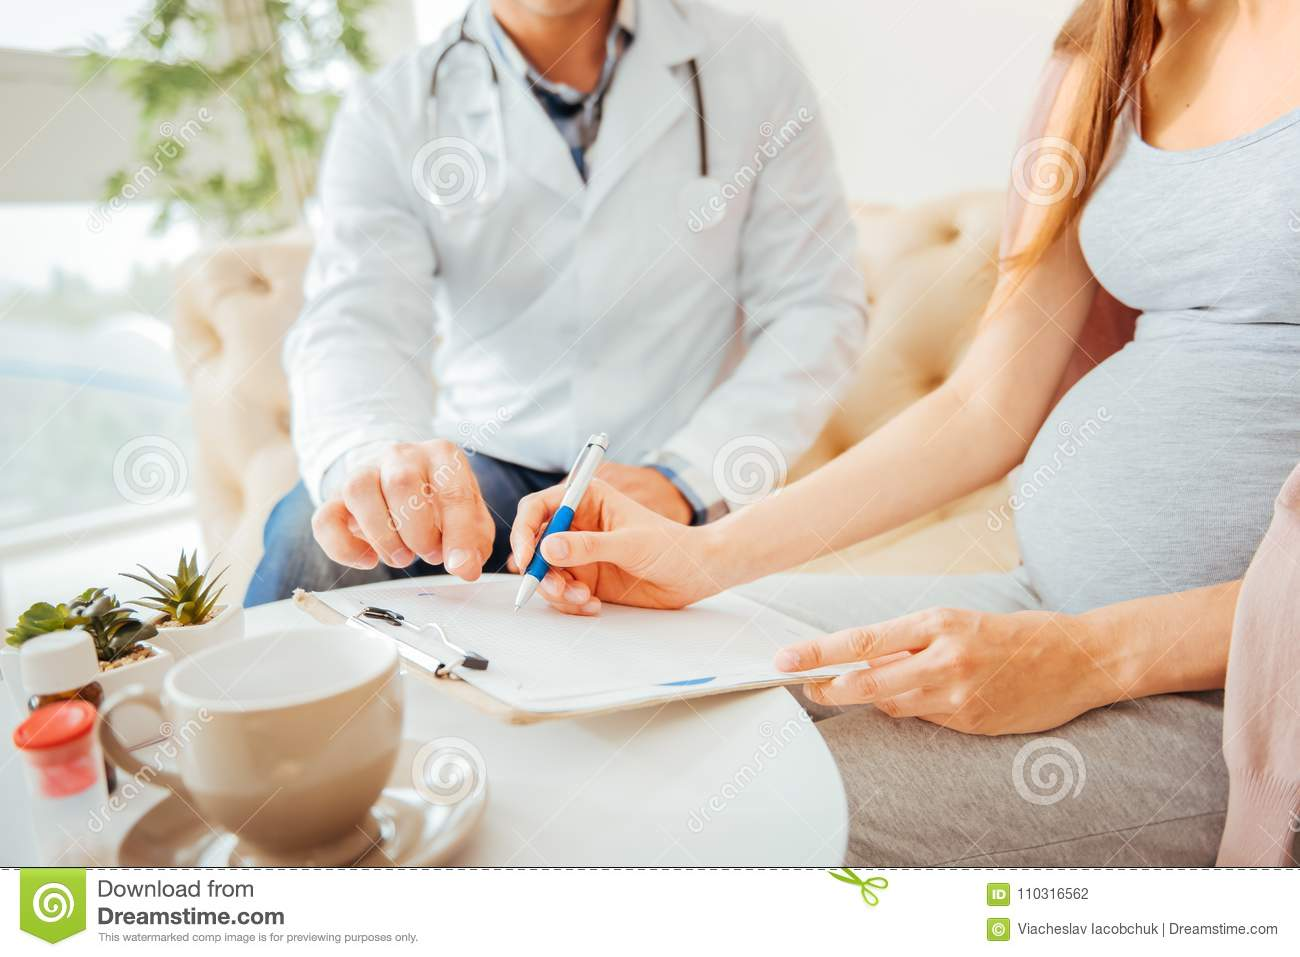 close up of pregnant woman filling medical form stock photo - image